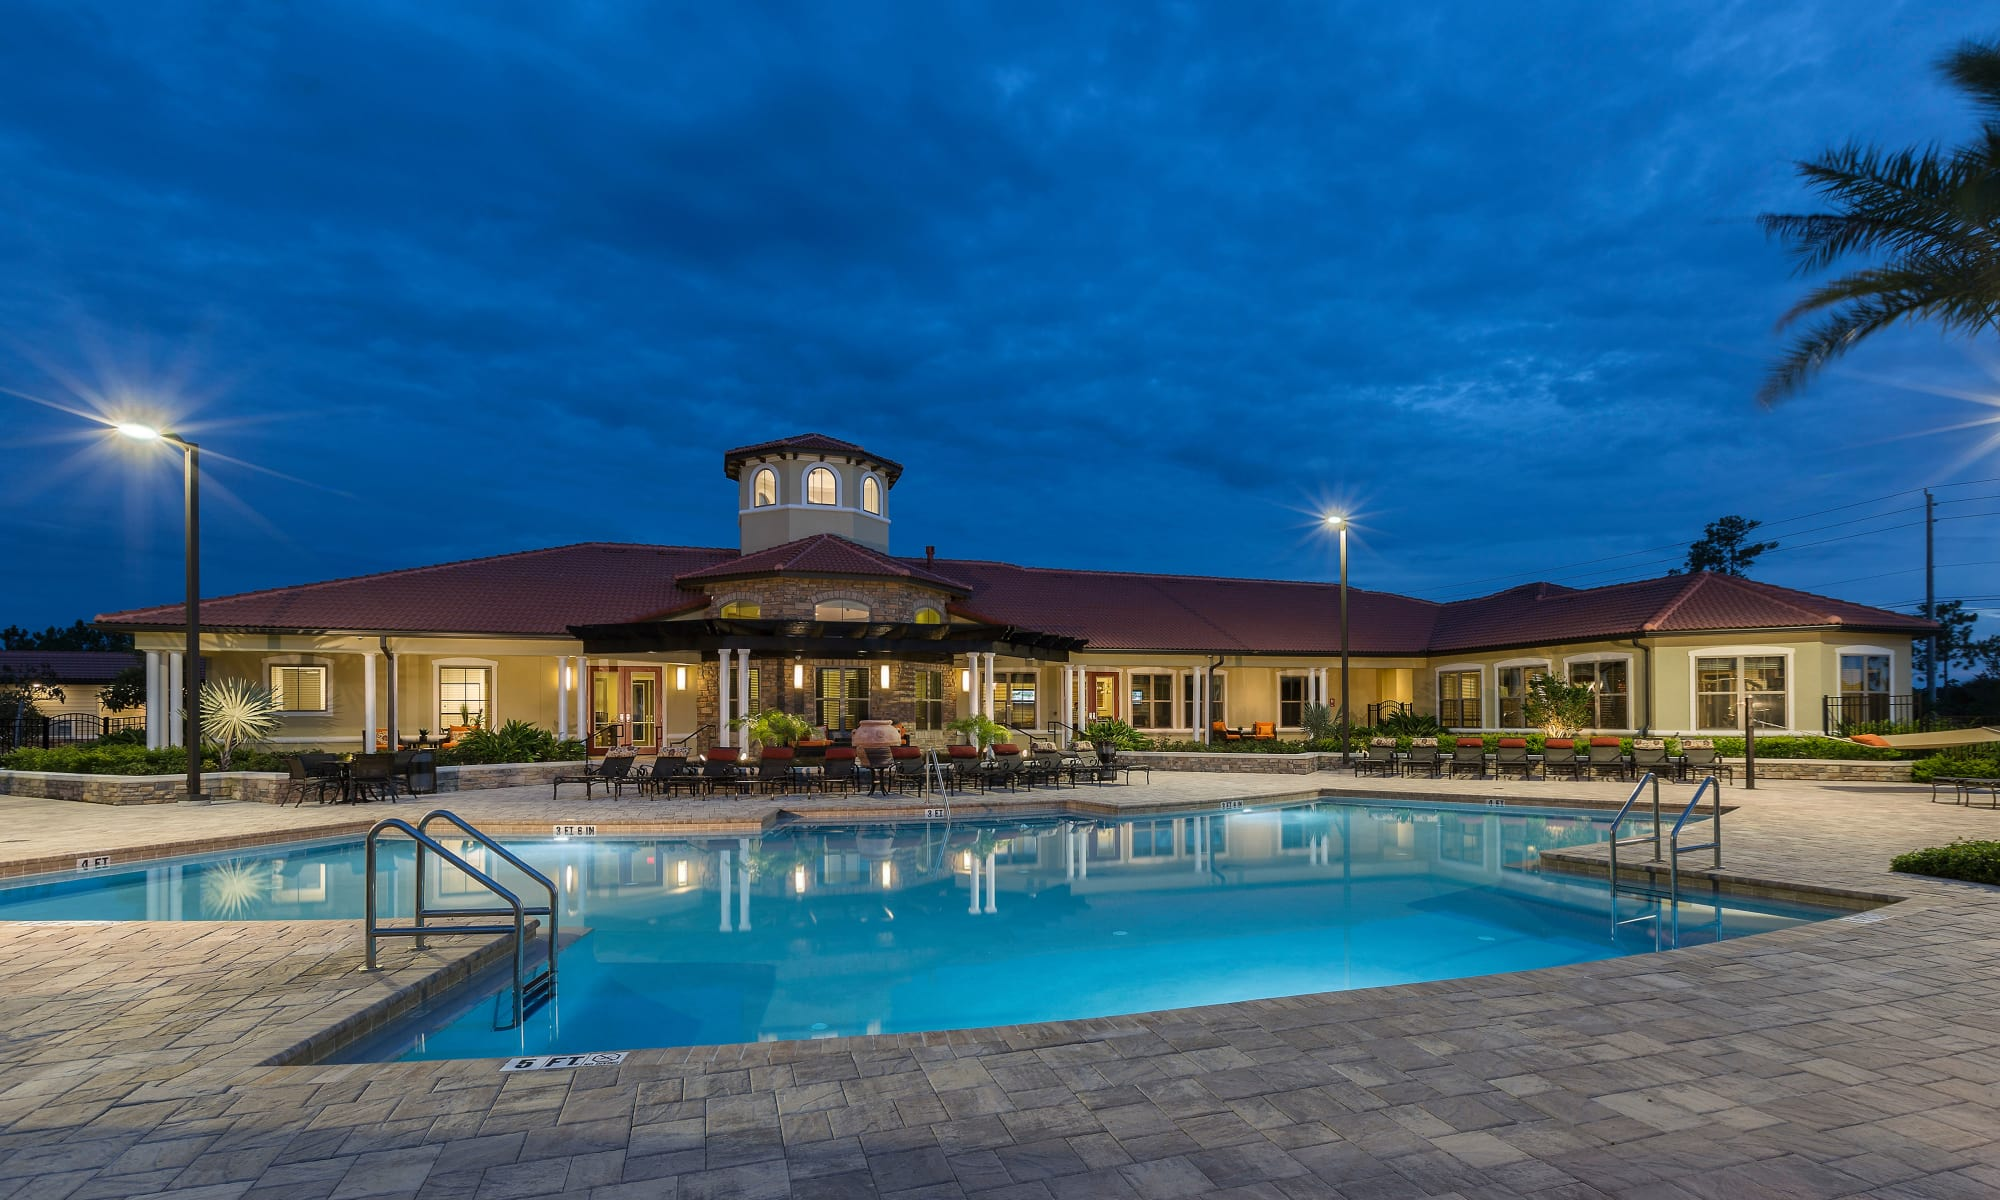 Luxury Apartments In Daytona Beach Fl